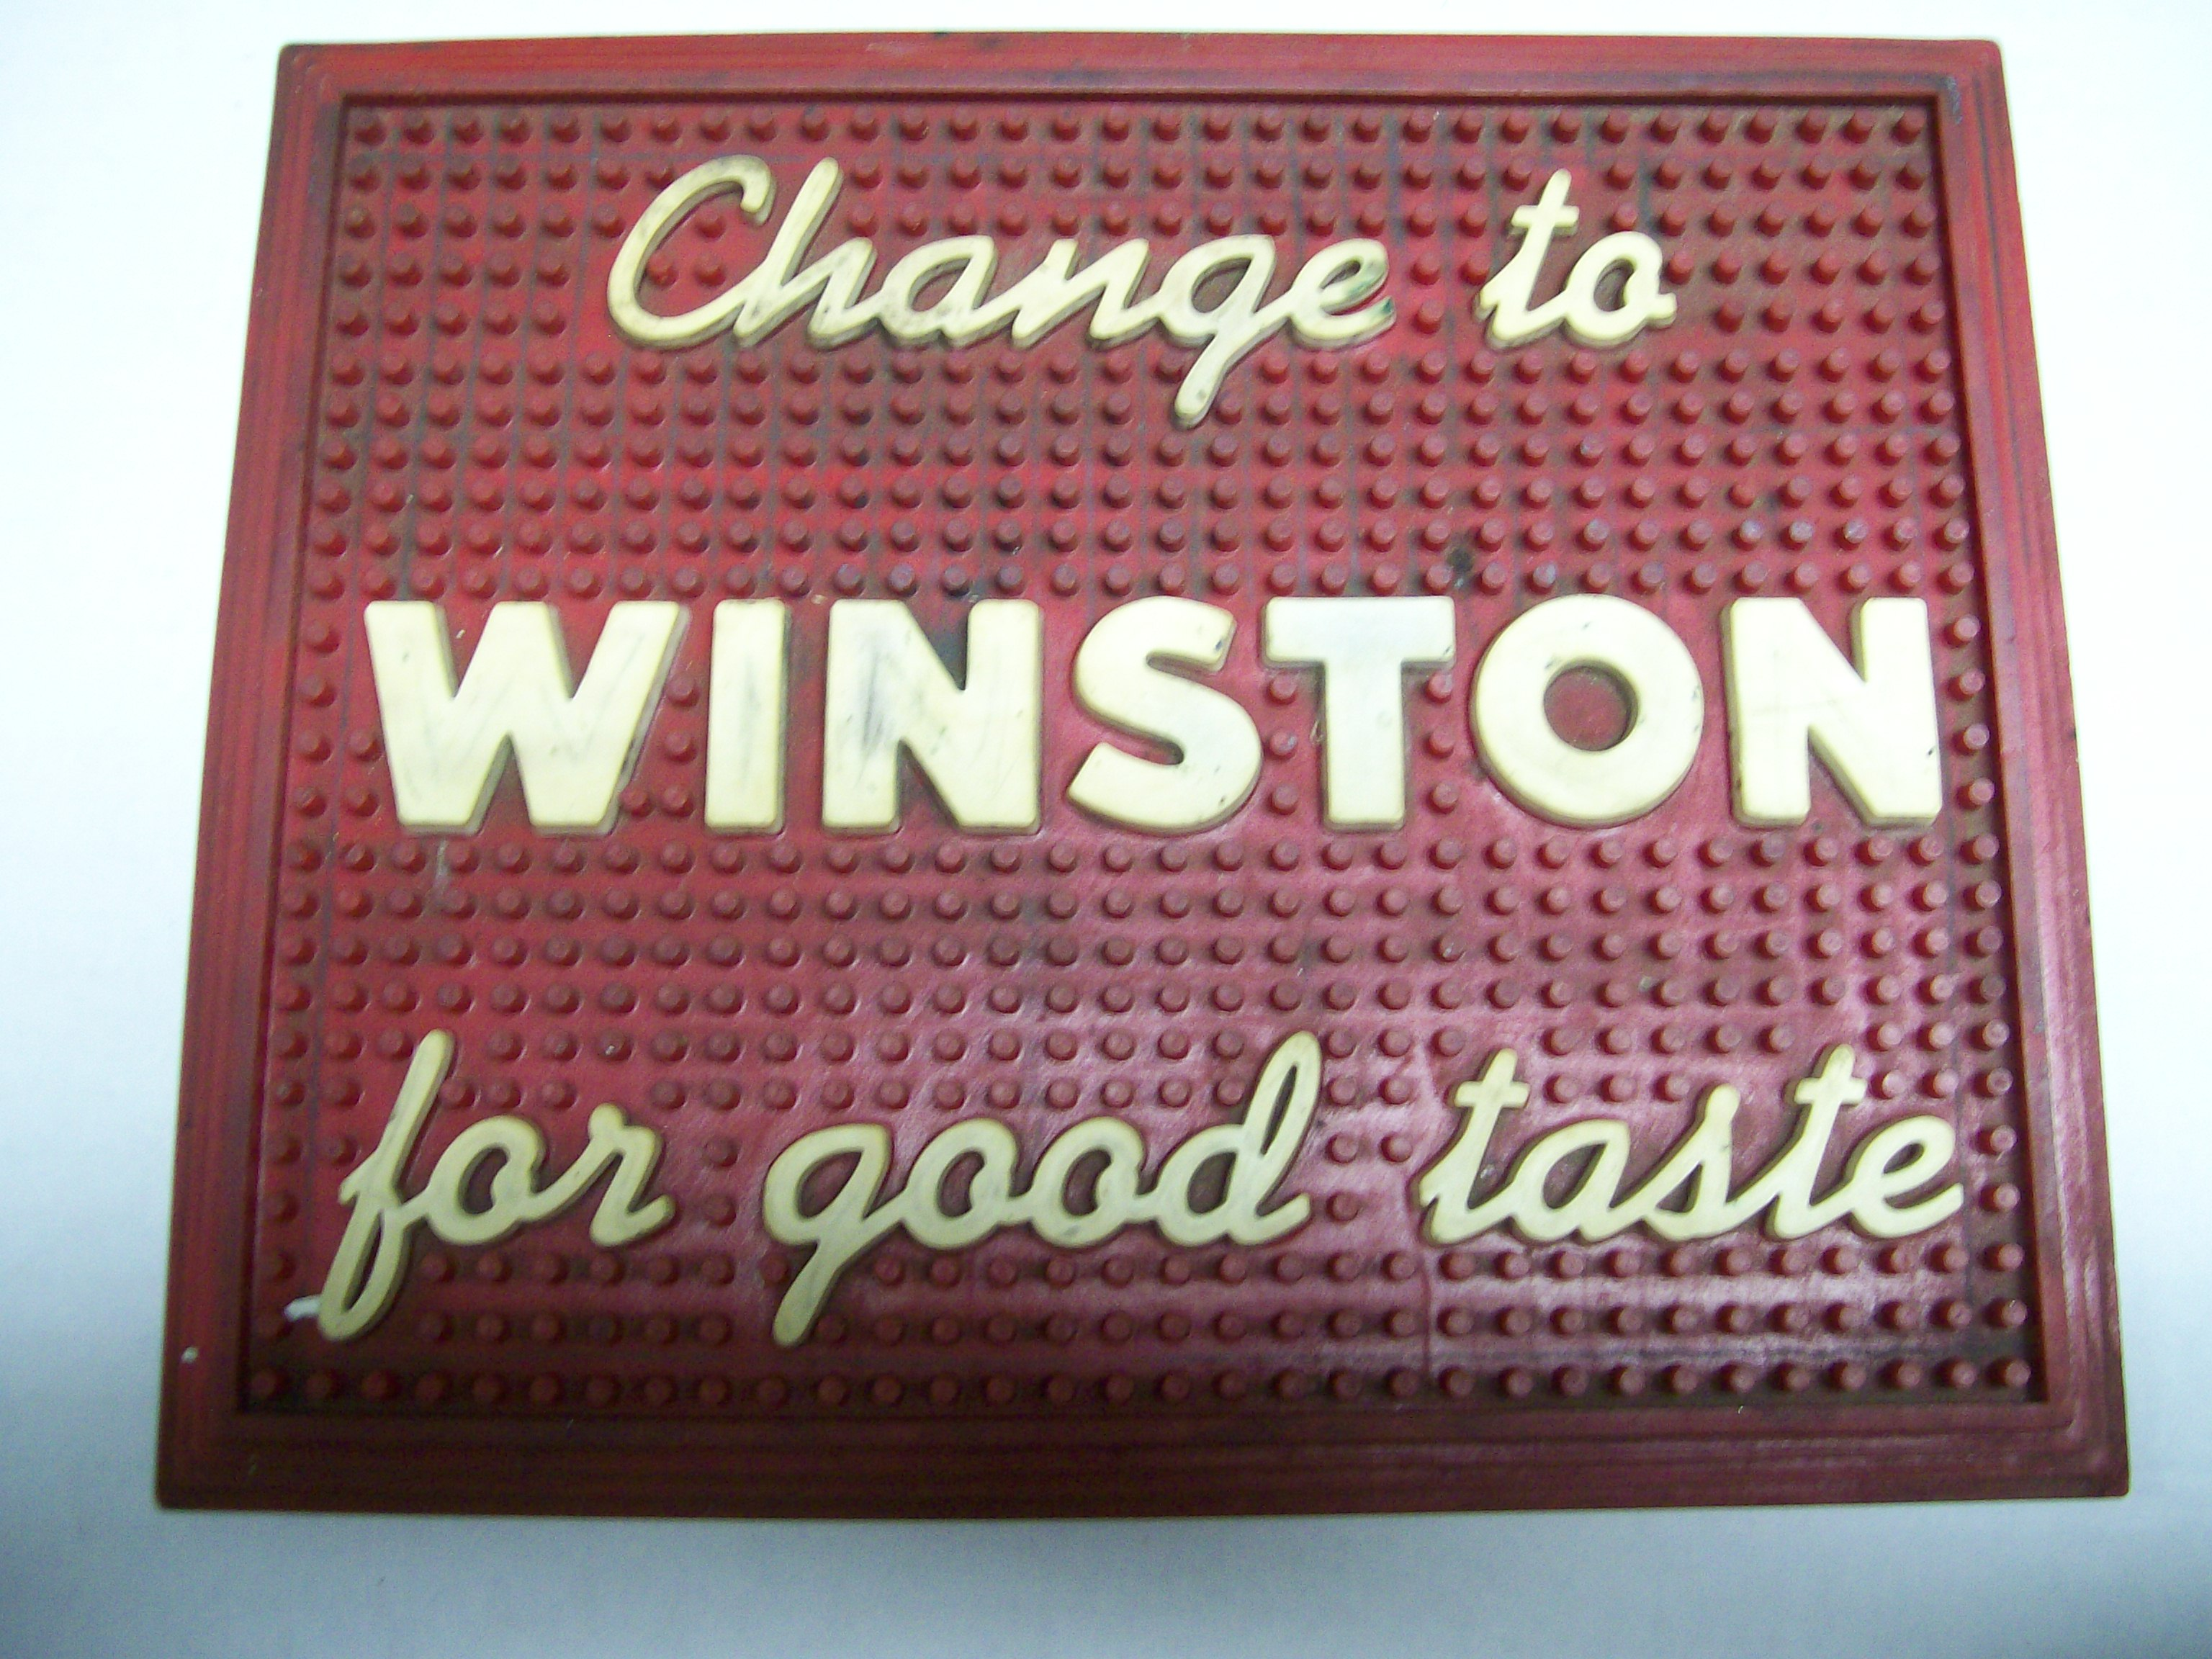 1950-60 Winston Cigarette Rubber Counter Display Mat